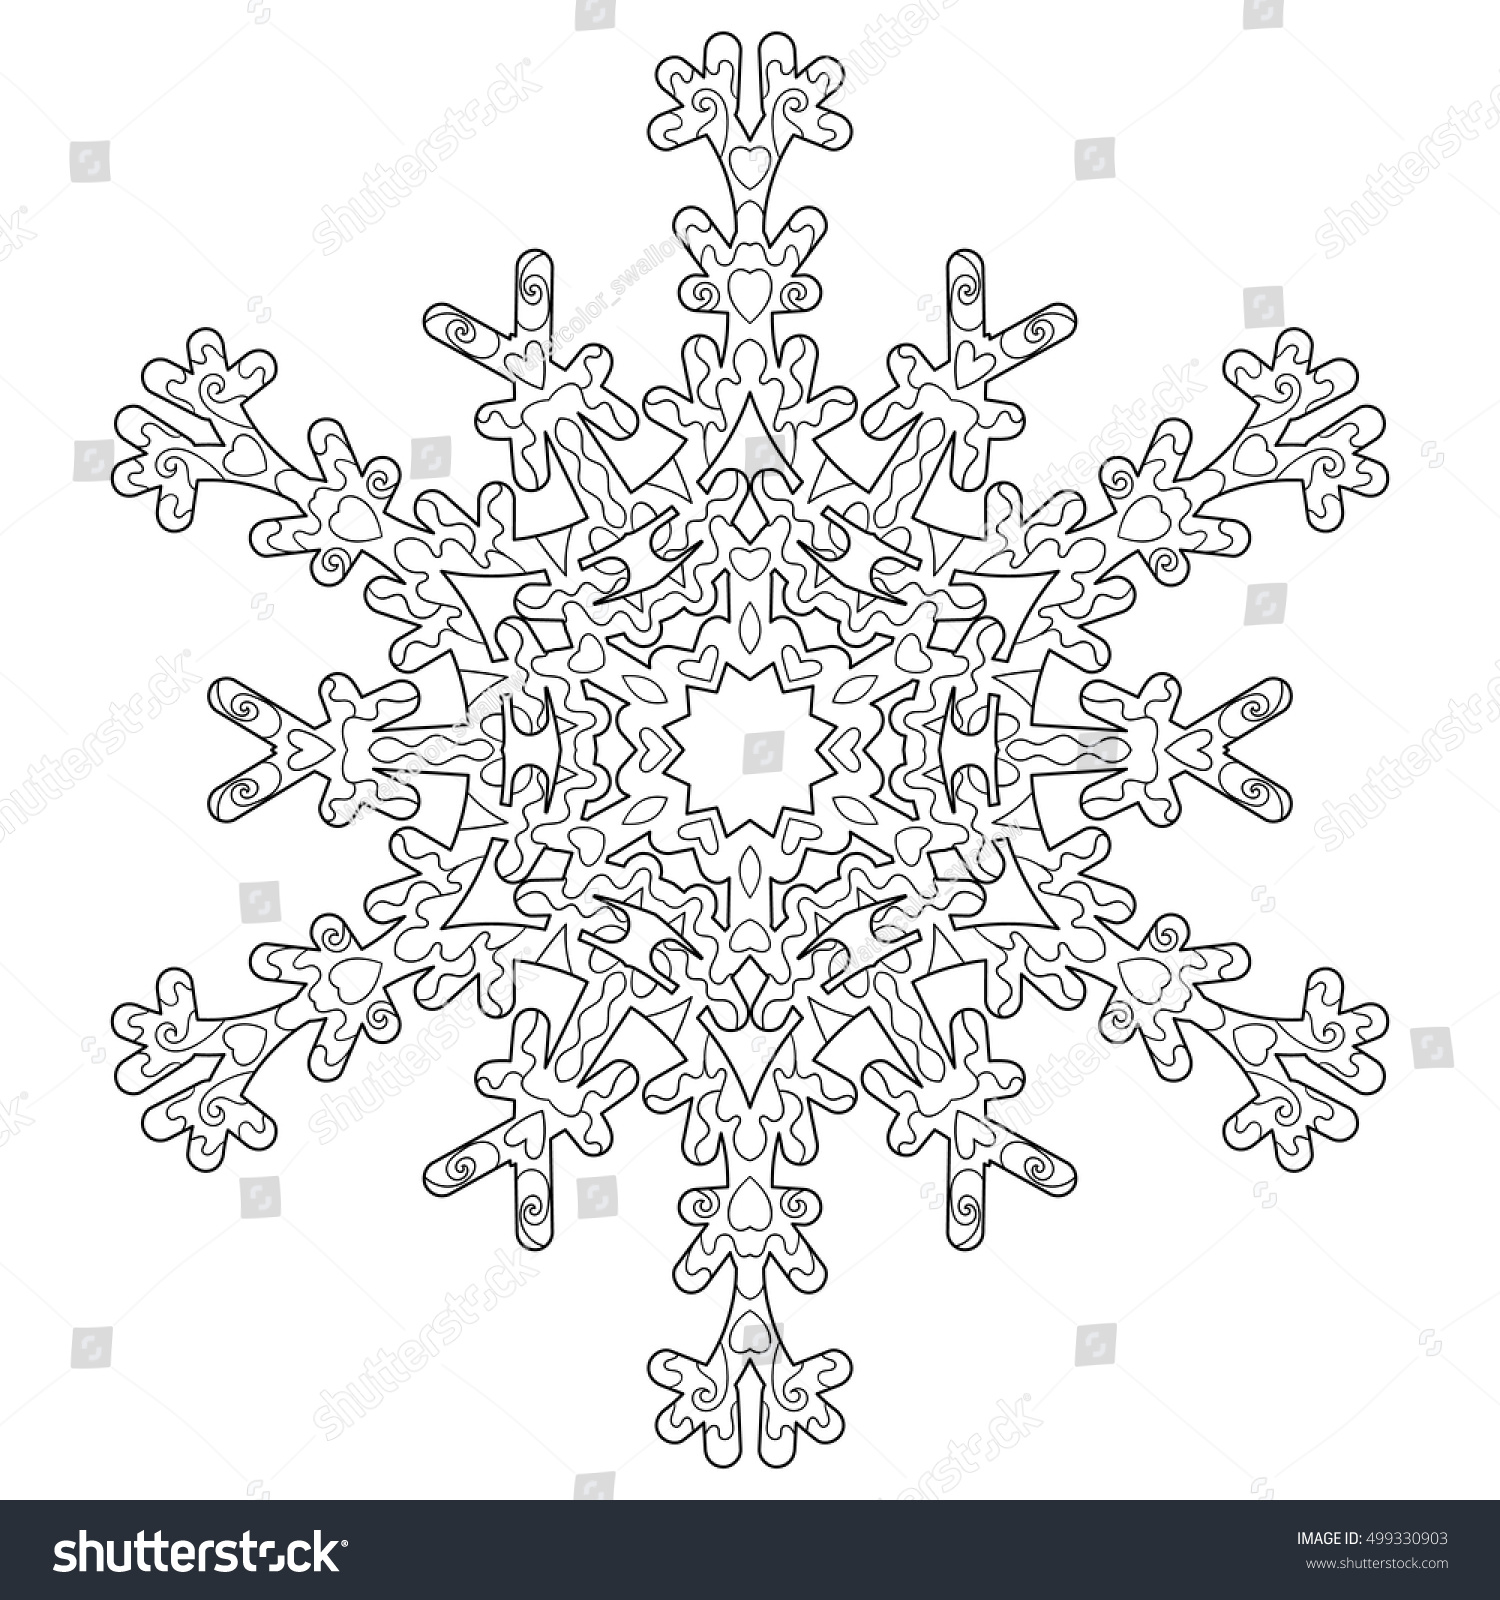 Hand Drawn Antistress Snowflake Template Cover Stock Vector (Royalty ...